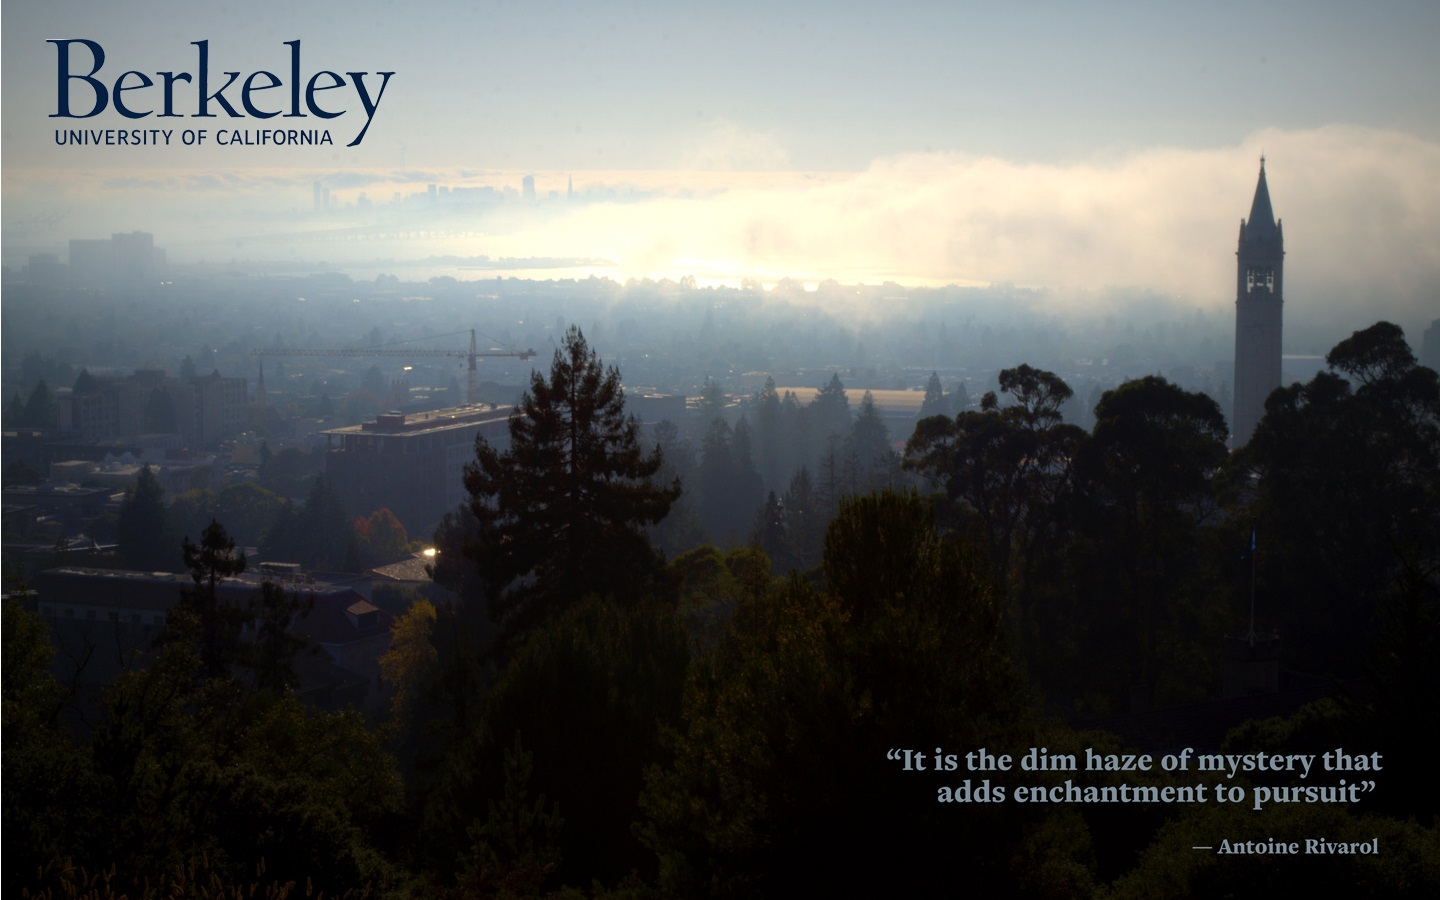 Wallpaper Downloads UC Berkeley Office of Undergraduate Admissions 1440x900